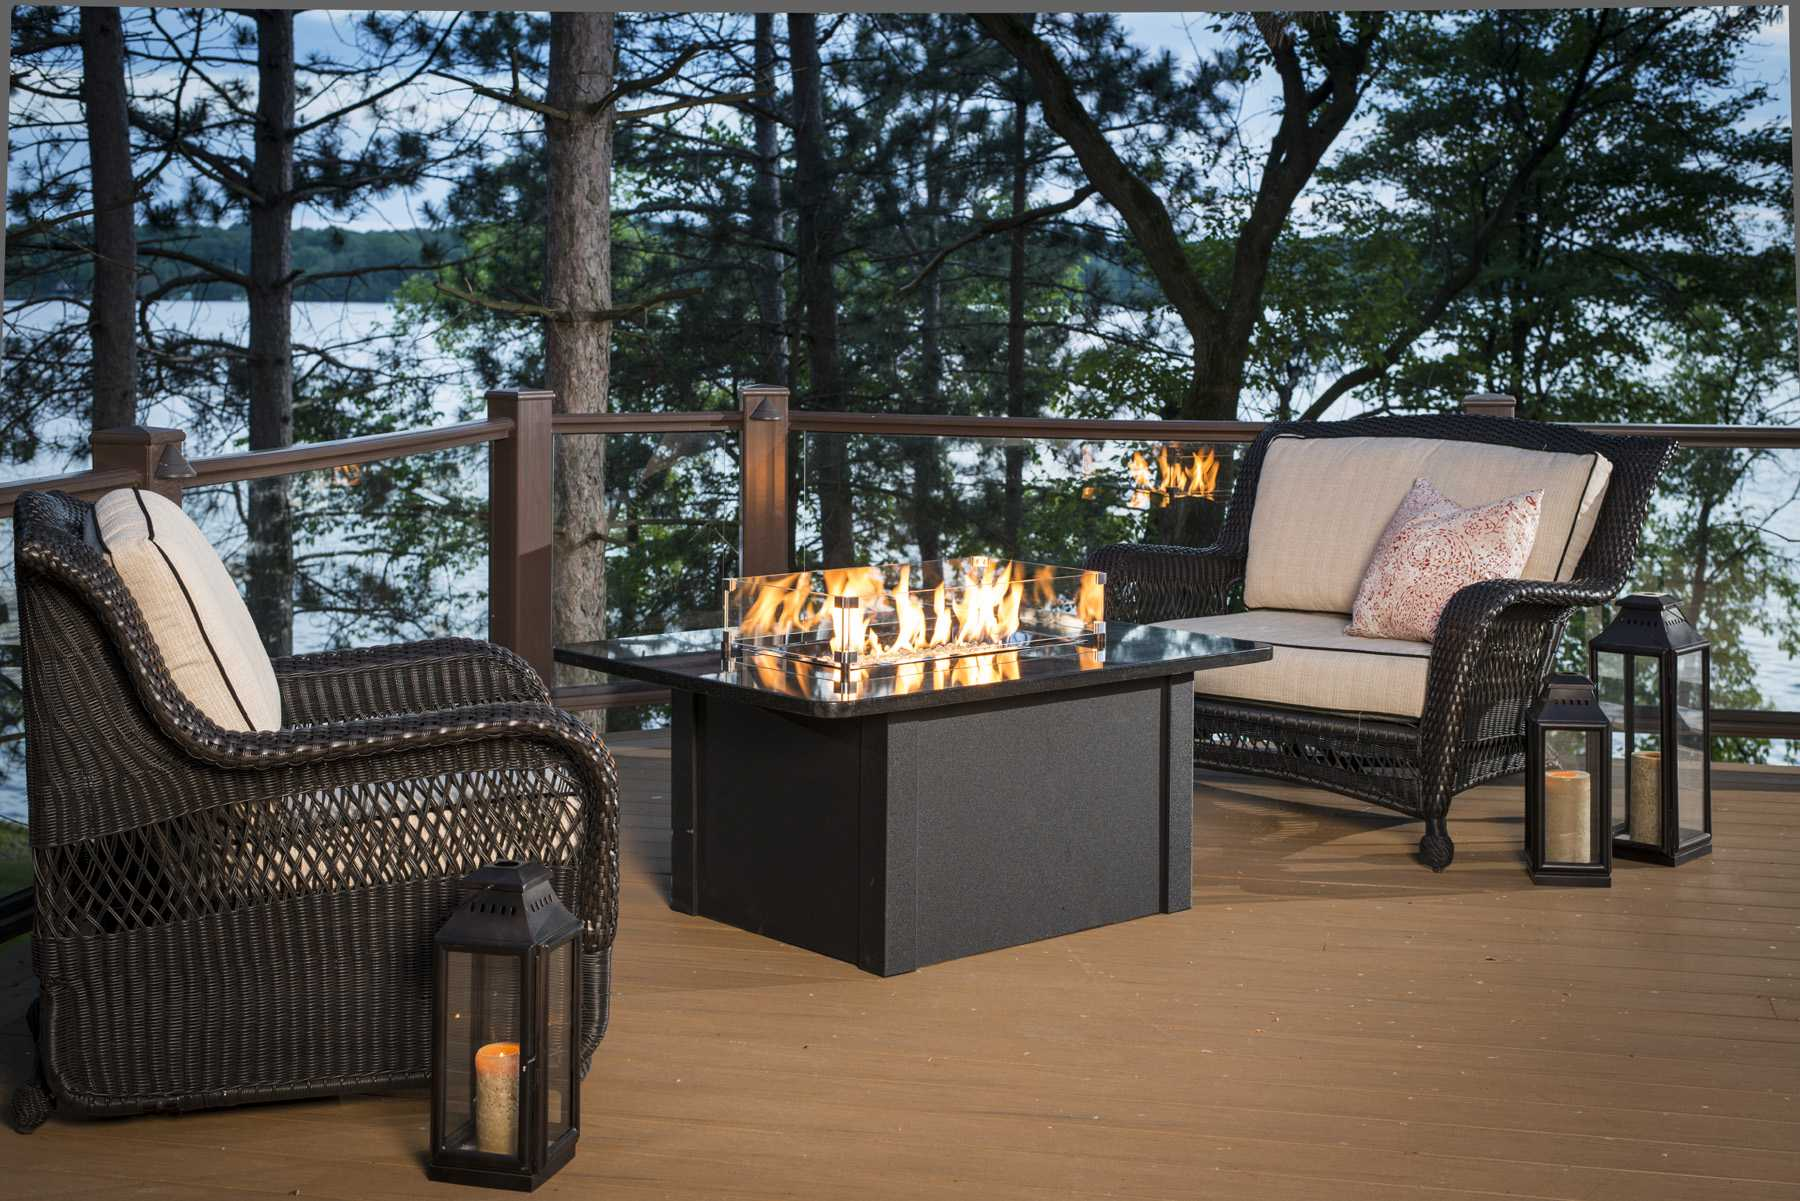 Outdoor Greatroom Grandstone Aluminum 48 X 36 Rectangular Crystal Fire Pit Table With Napa